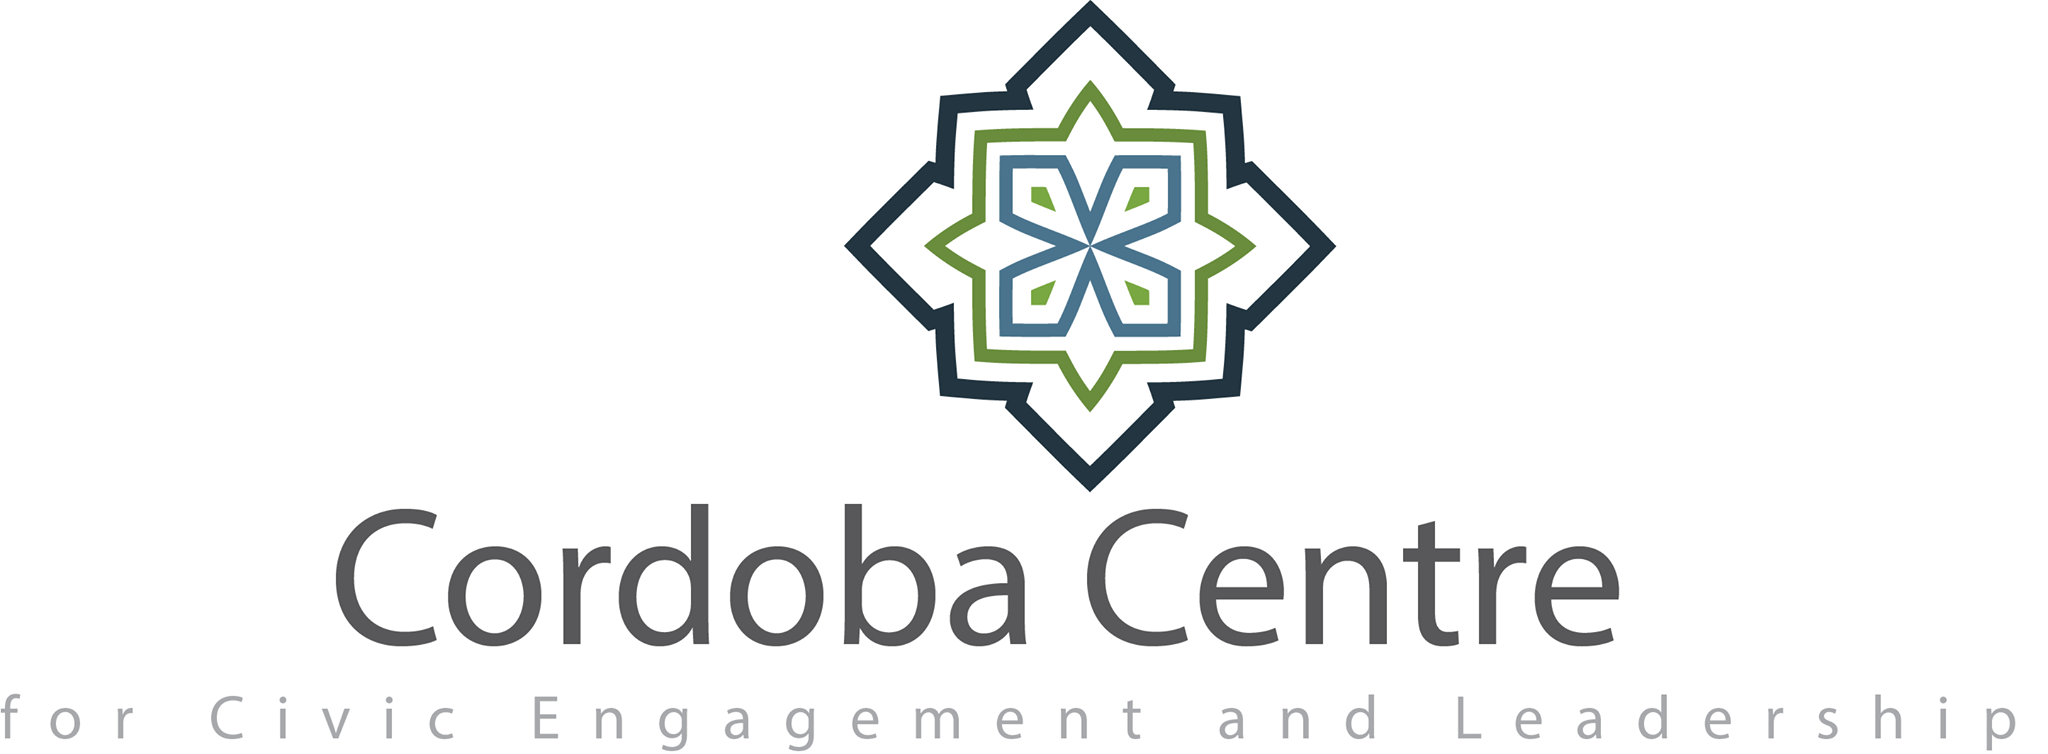 Cordoba Centre for Civic Engagement and Leadership